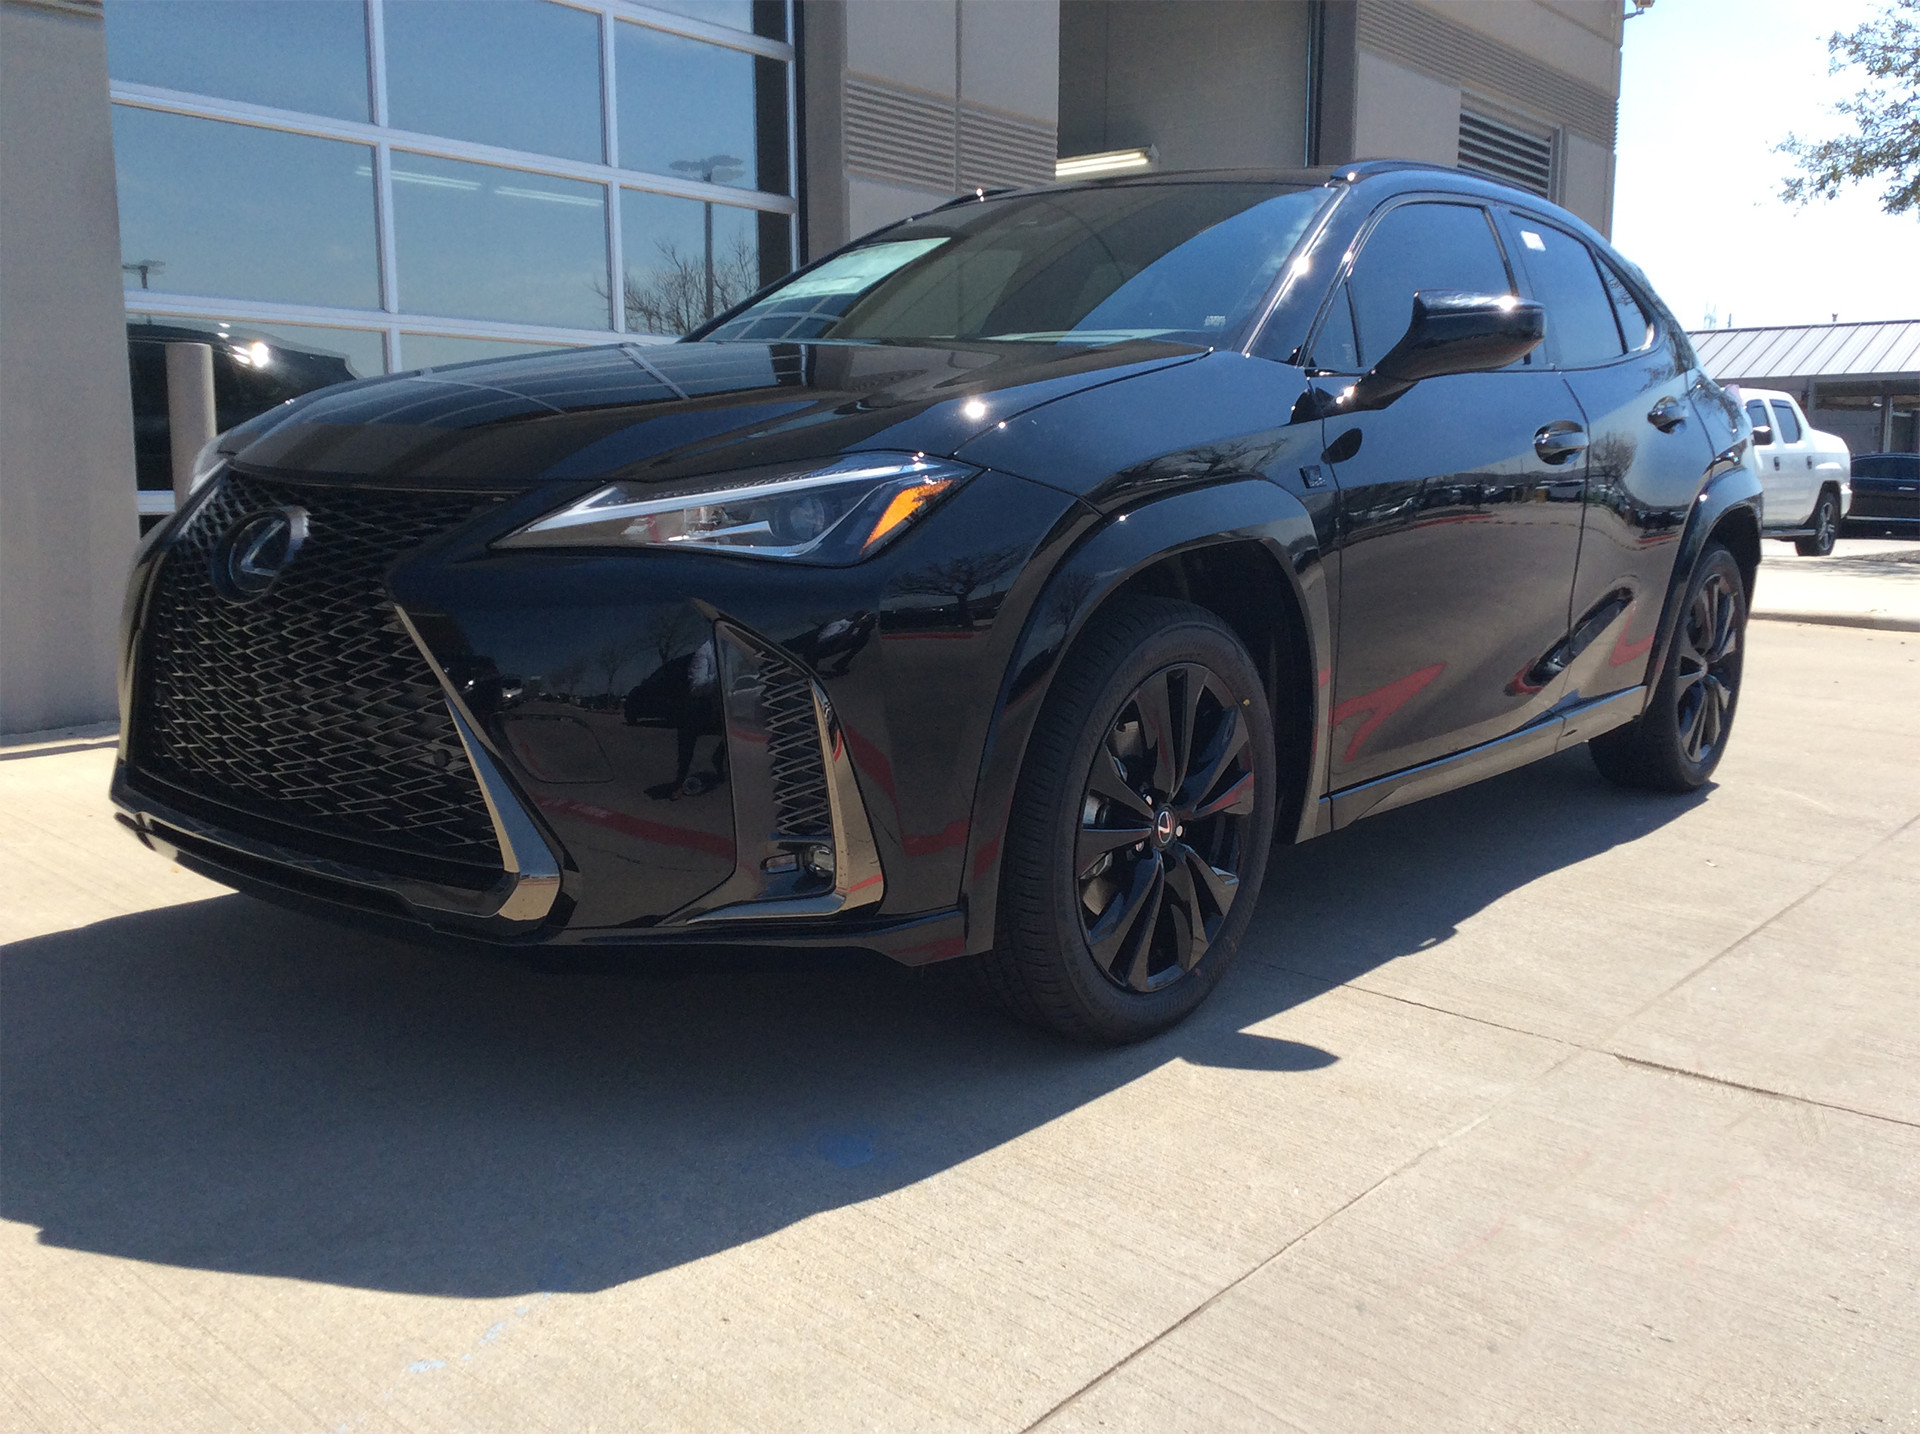 Lexus UX200 Blacked Out